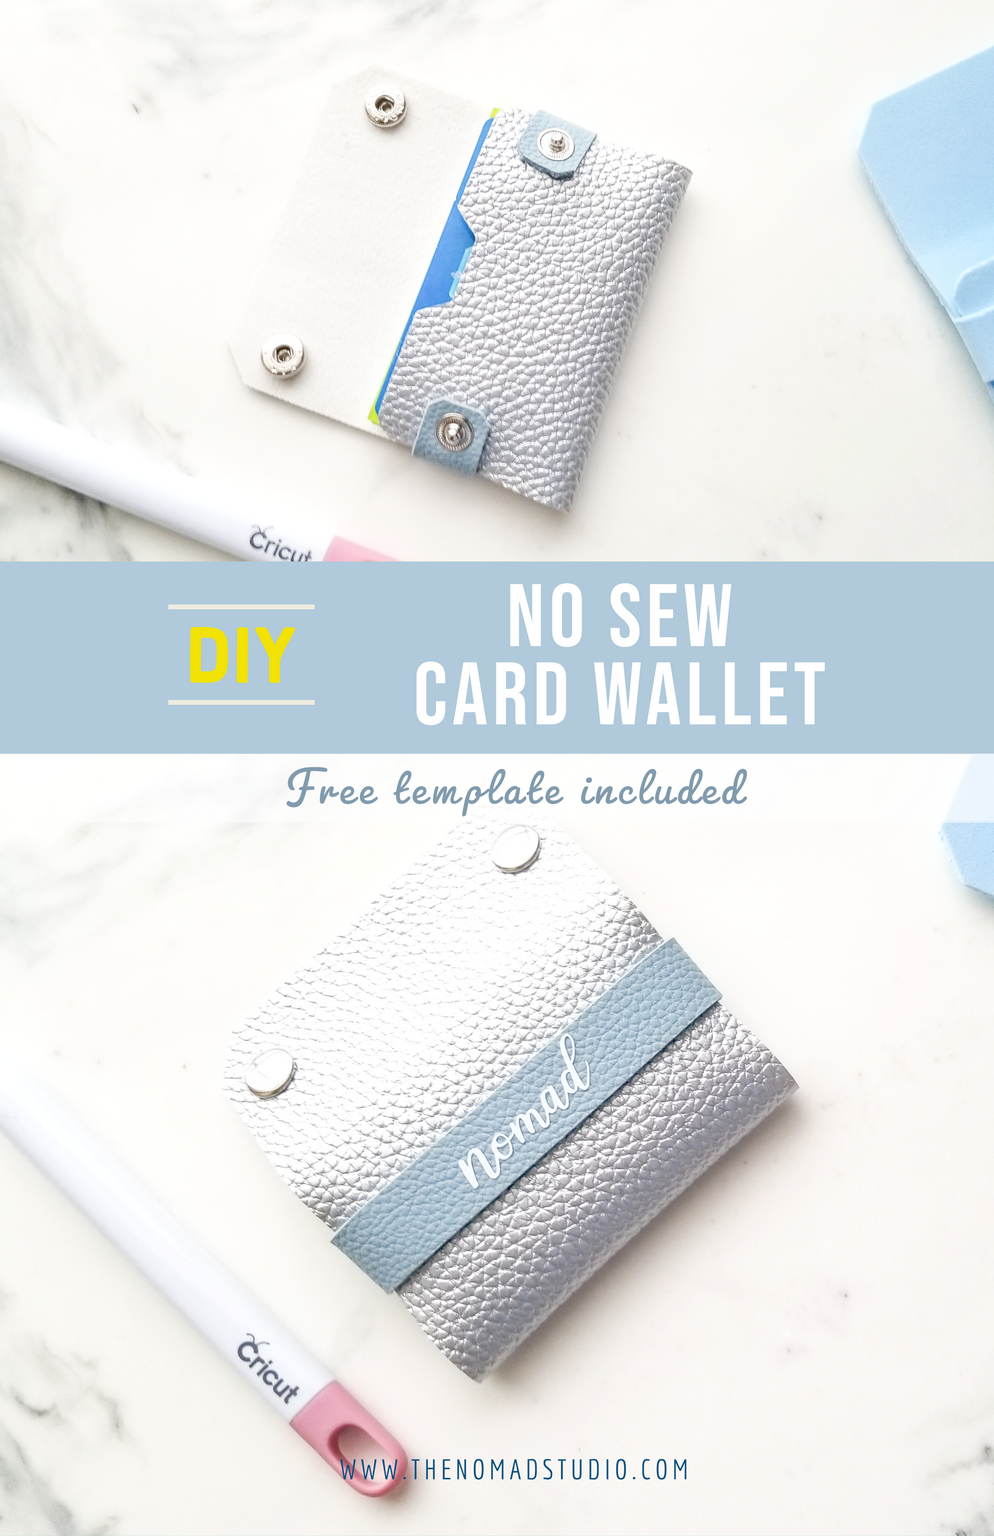 No sew Card Wallet with free template